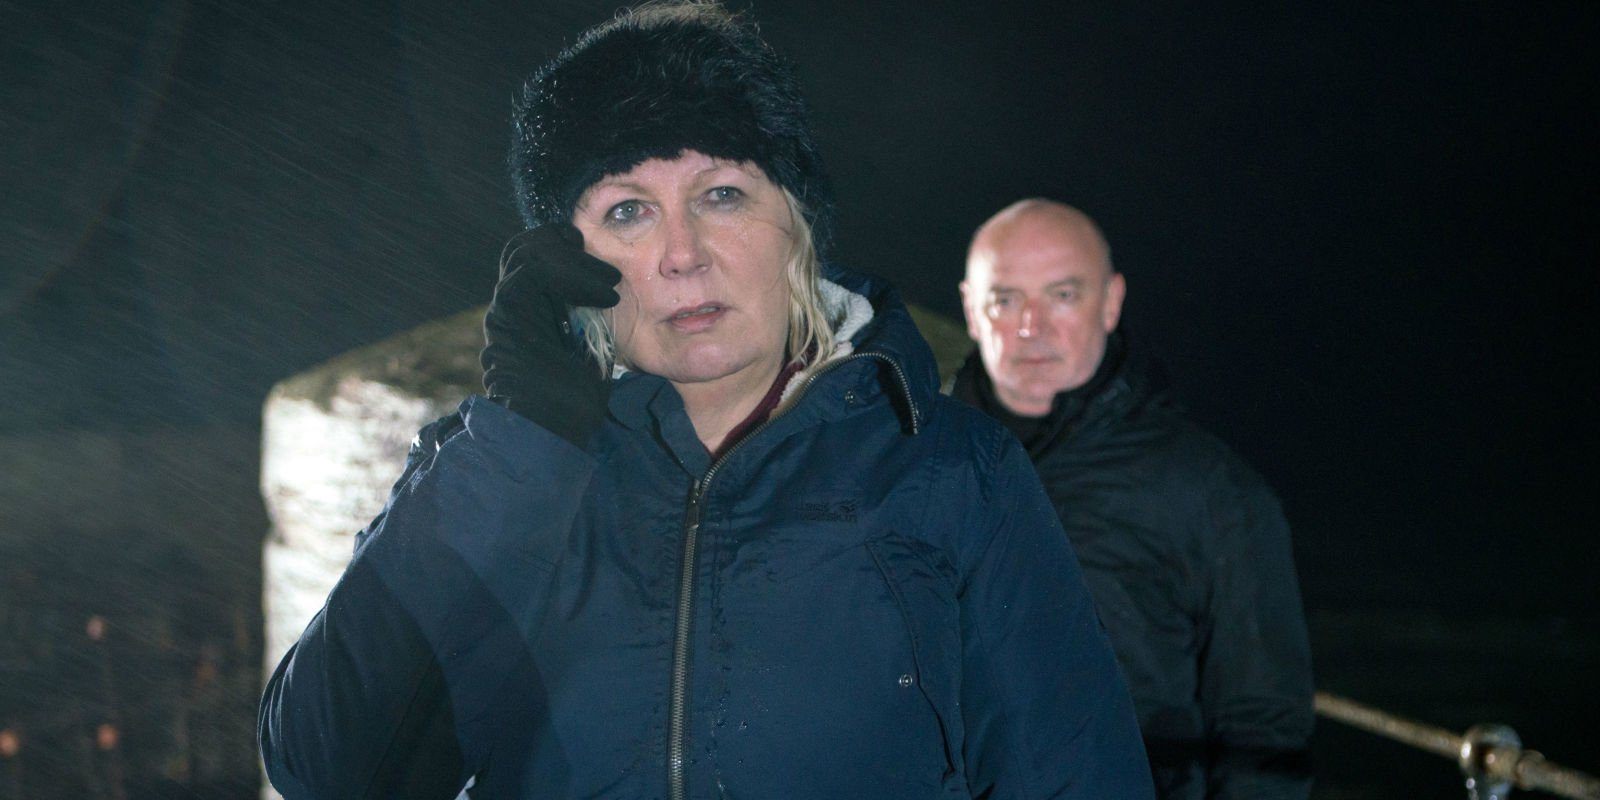 Coronation Street's Eileen will have a surprising ally after Phelan's crimes are exposed